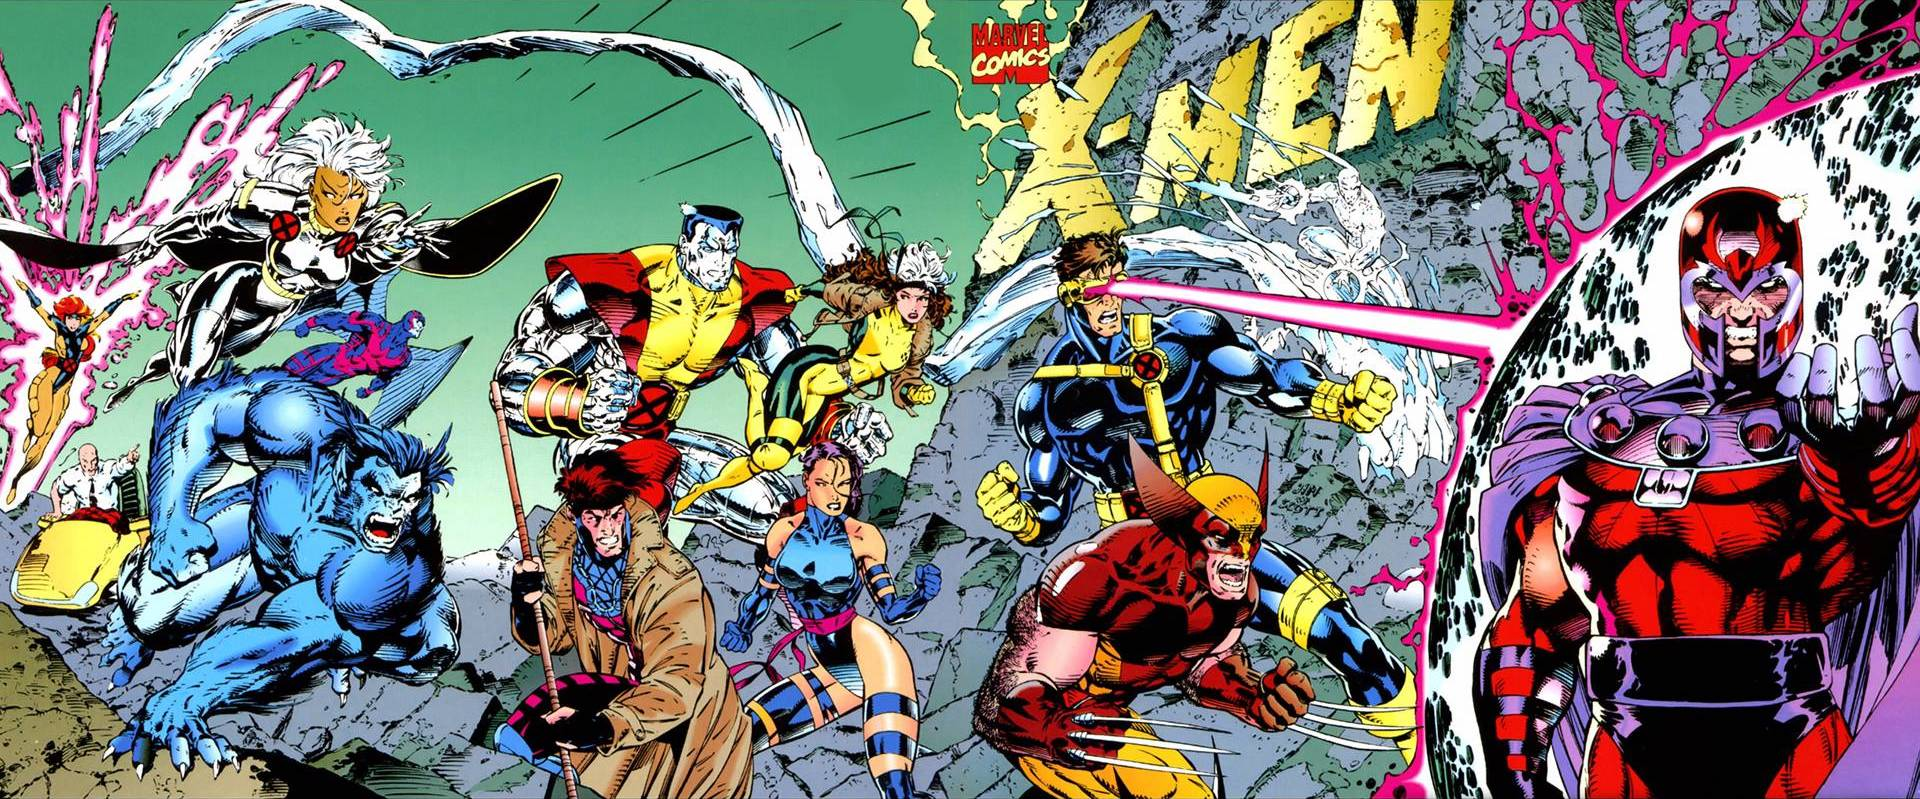 The X-Men and their foe Magneto battle across the four-cover-wide cover of X-Men #1, Marvel Comics (1991).